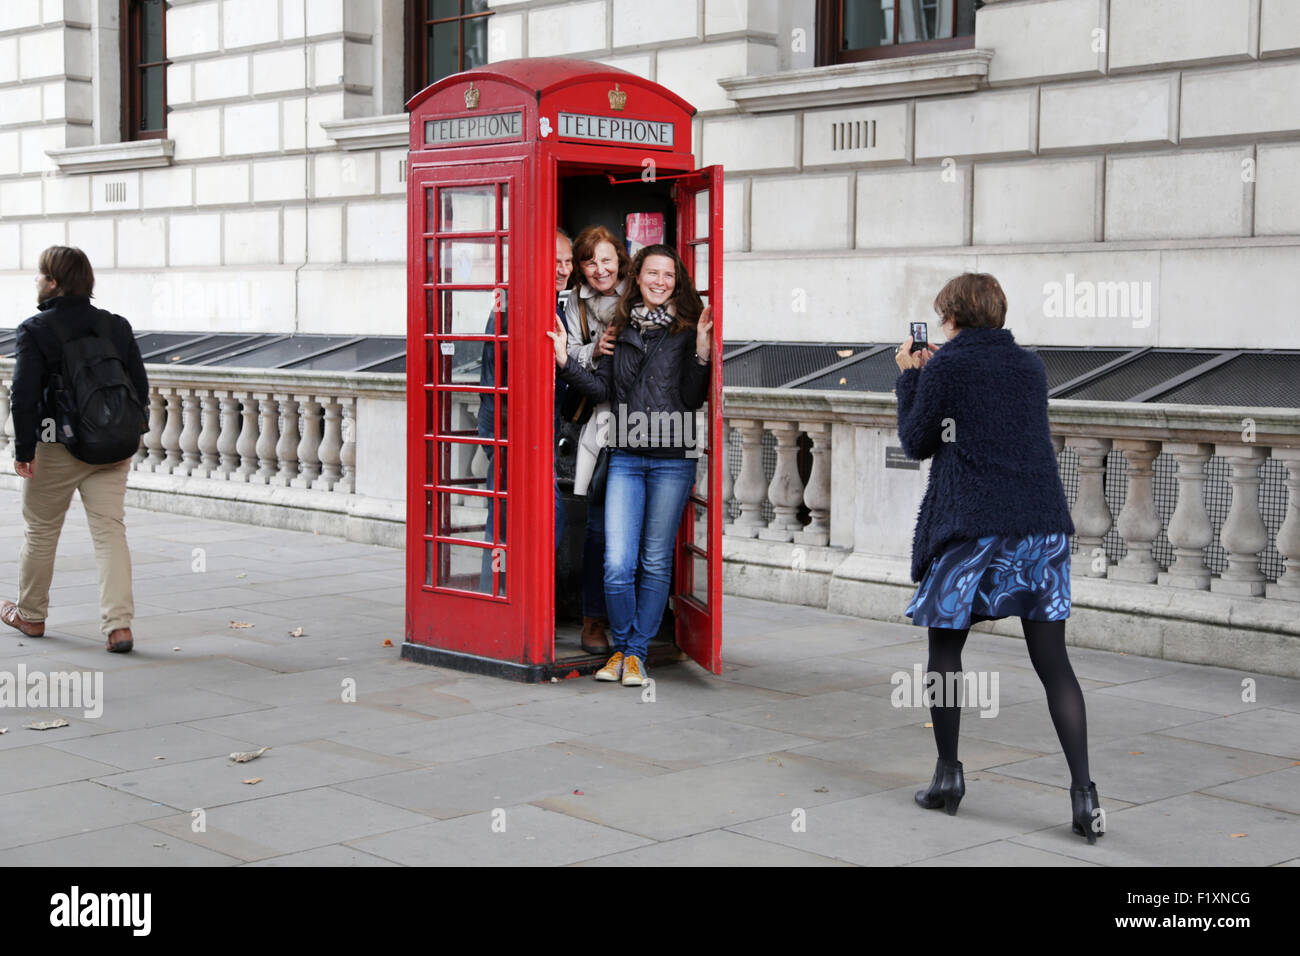 london-september-2015-a-group-of-tourist